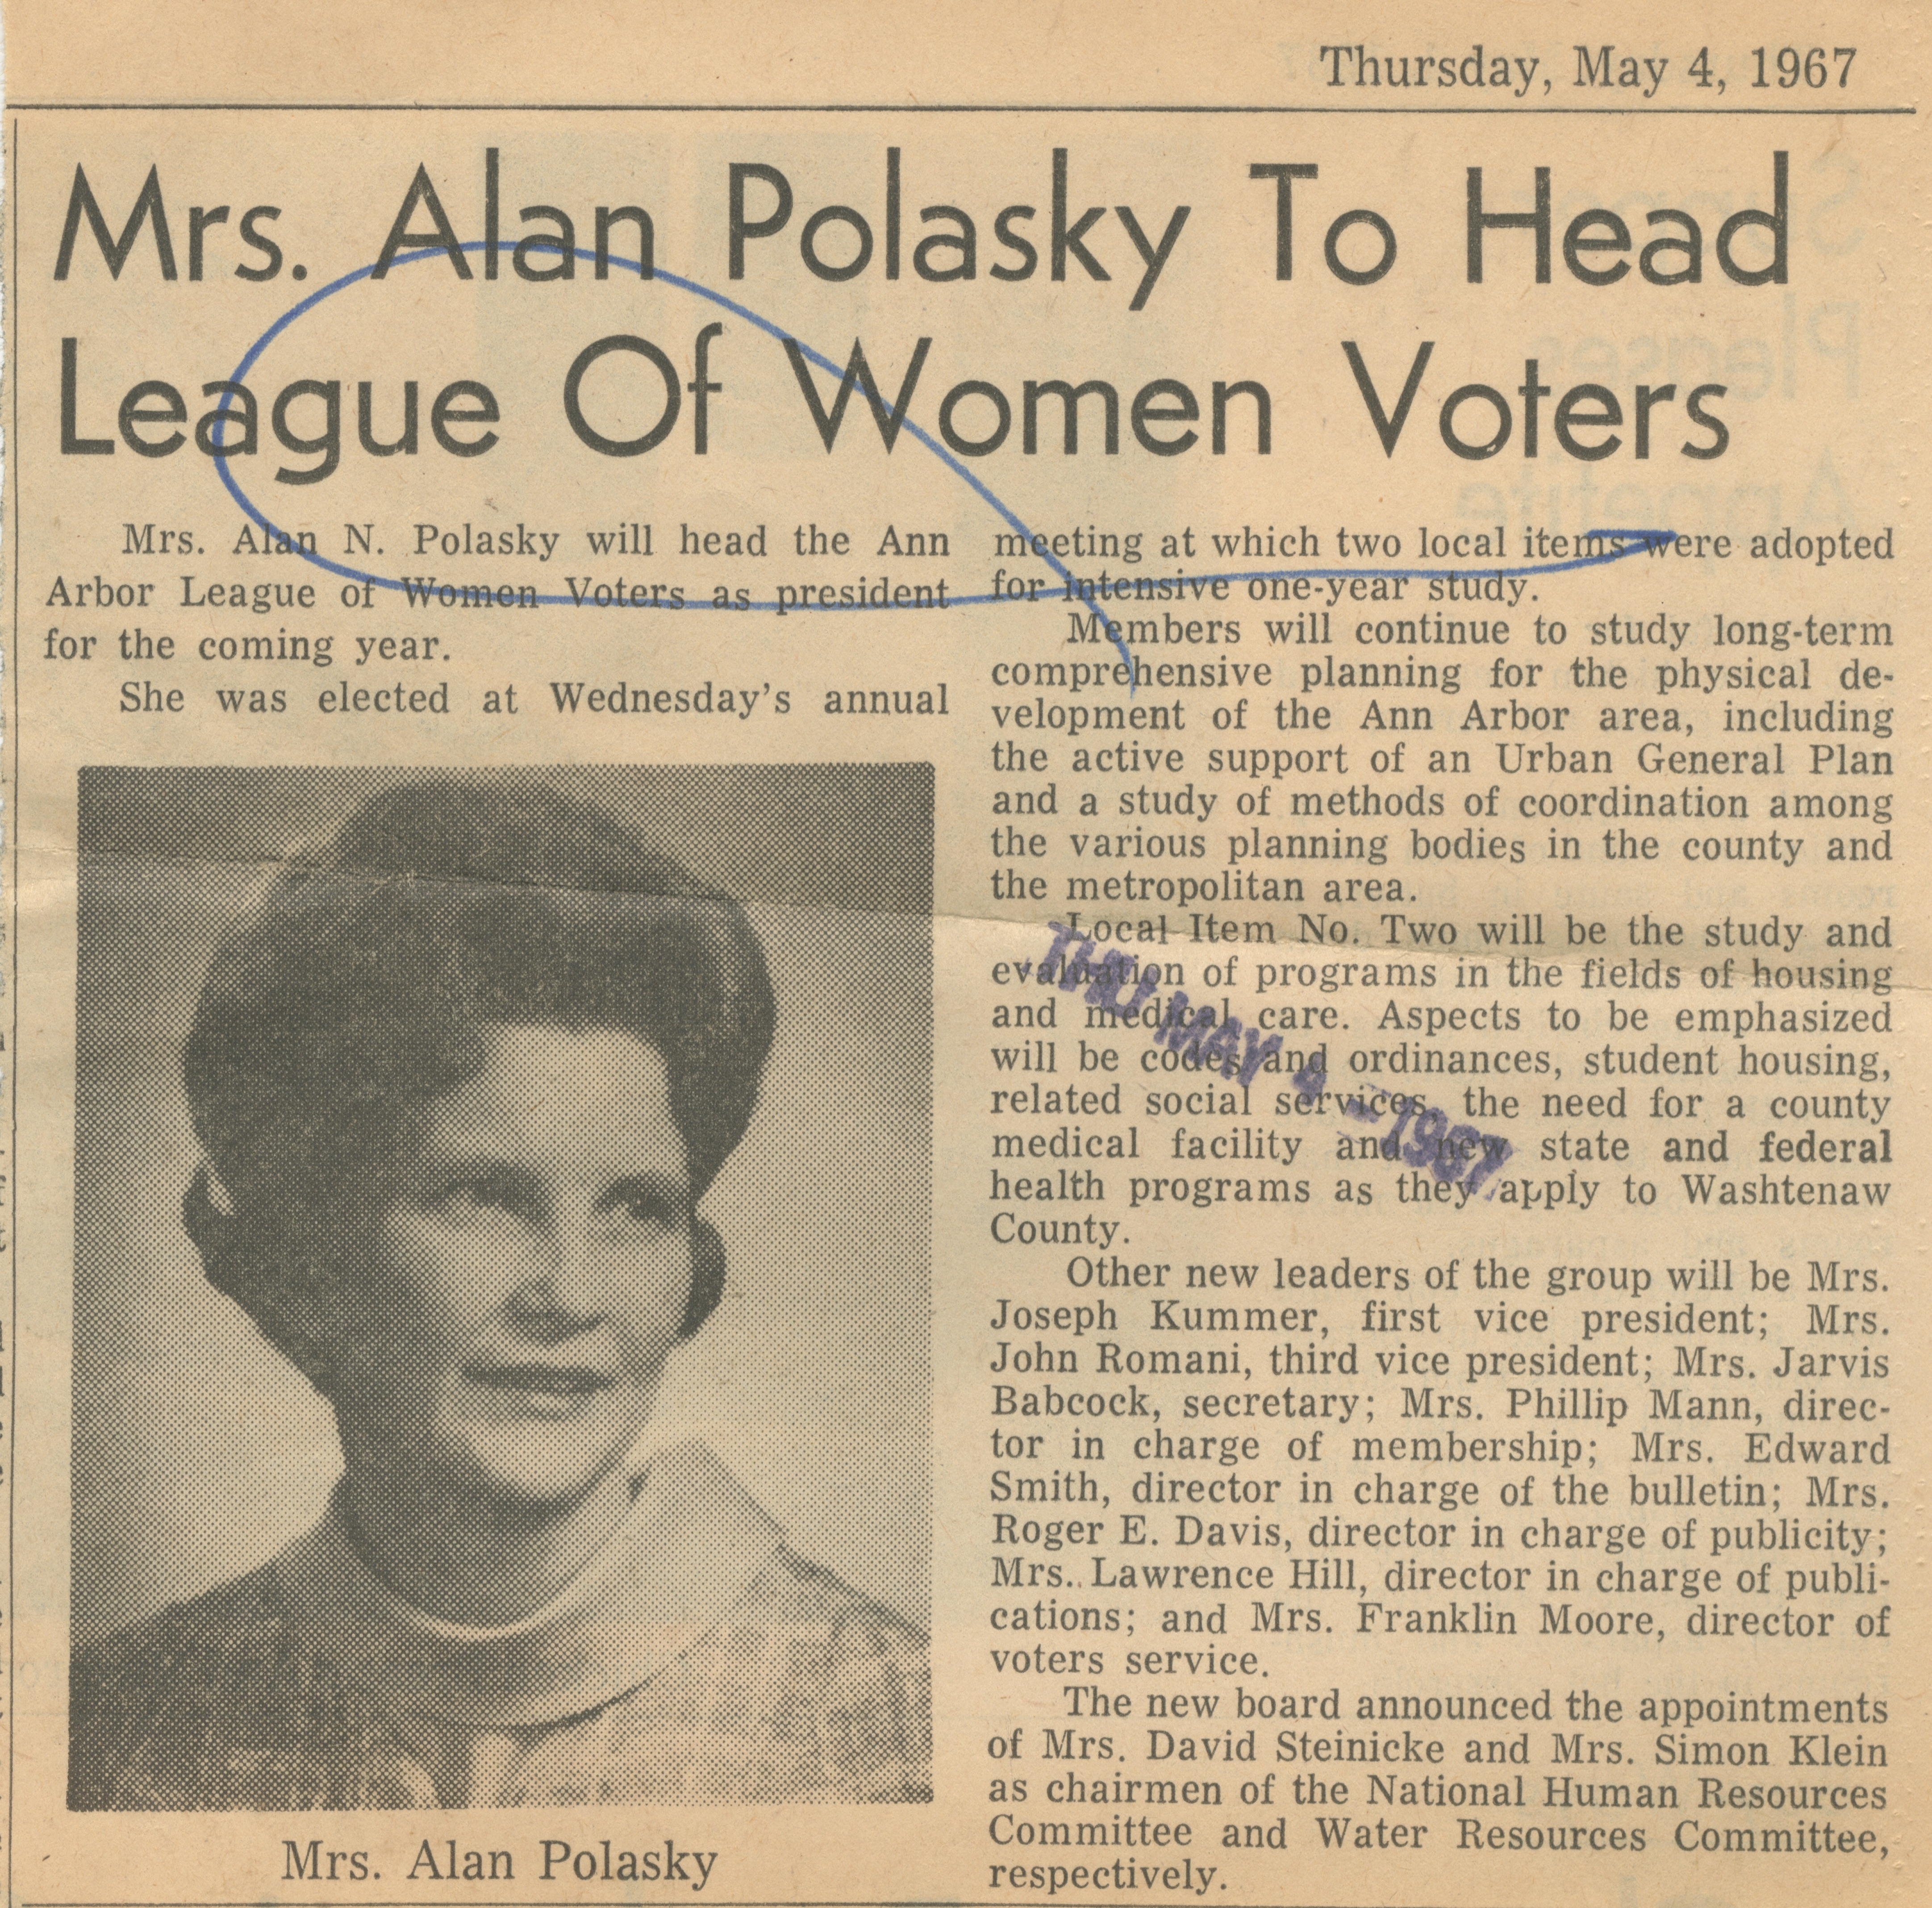 Mrs. Alan Polasky To Head League Of Women Voters image